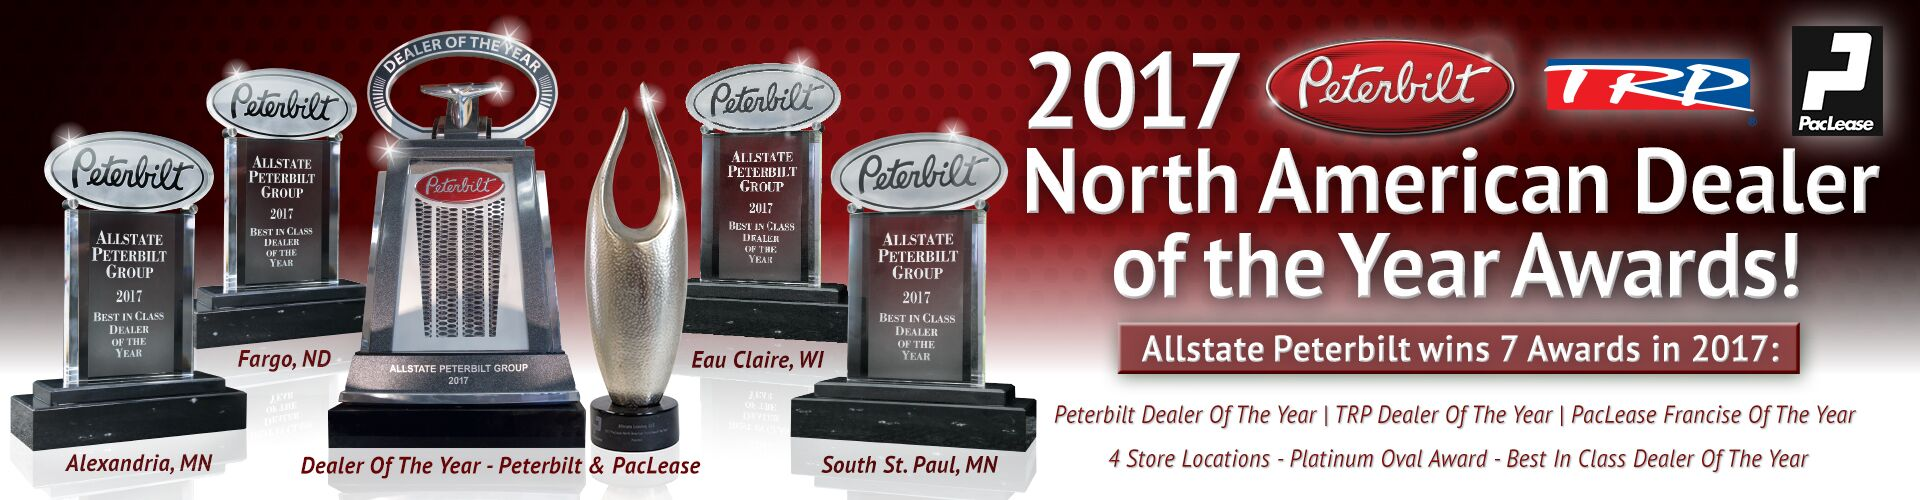 2017 Peterbilt Dealer of the Year - Allstate Peterbilt Group